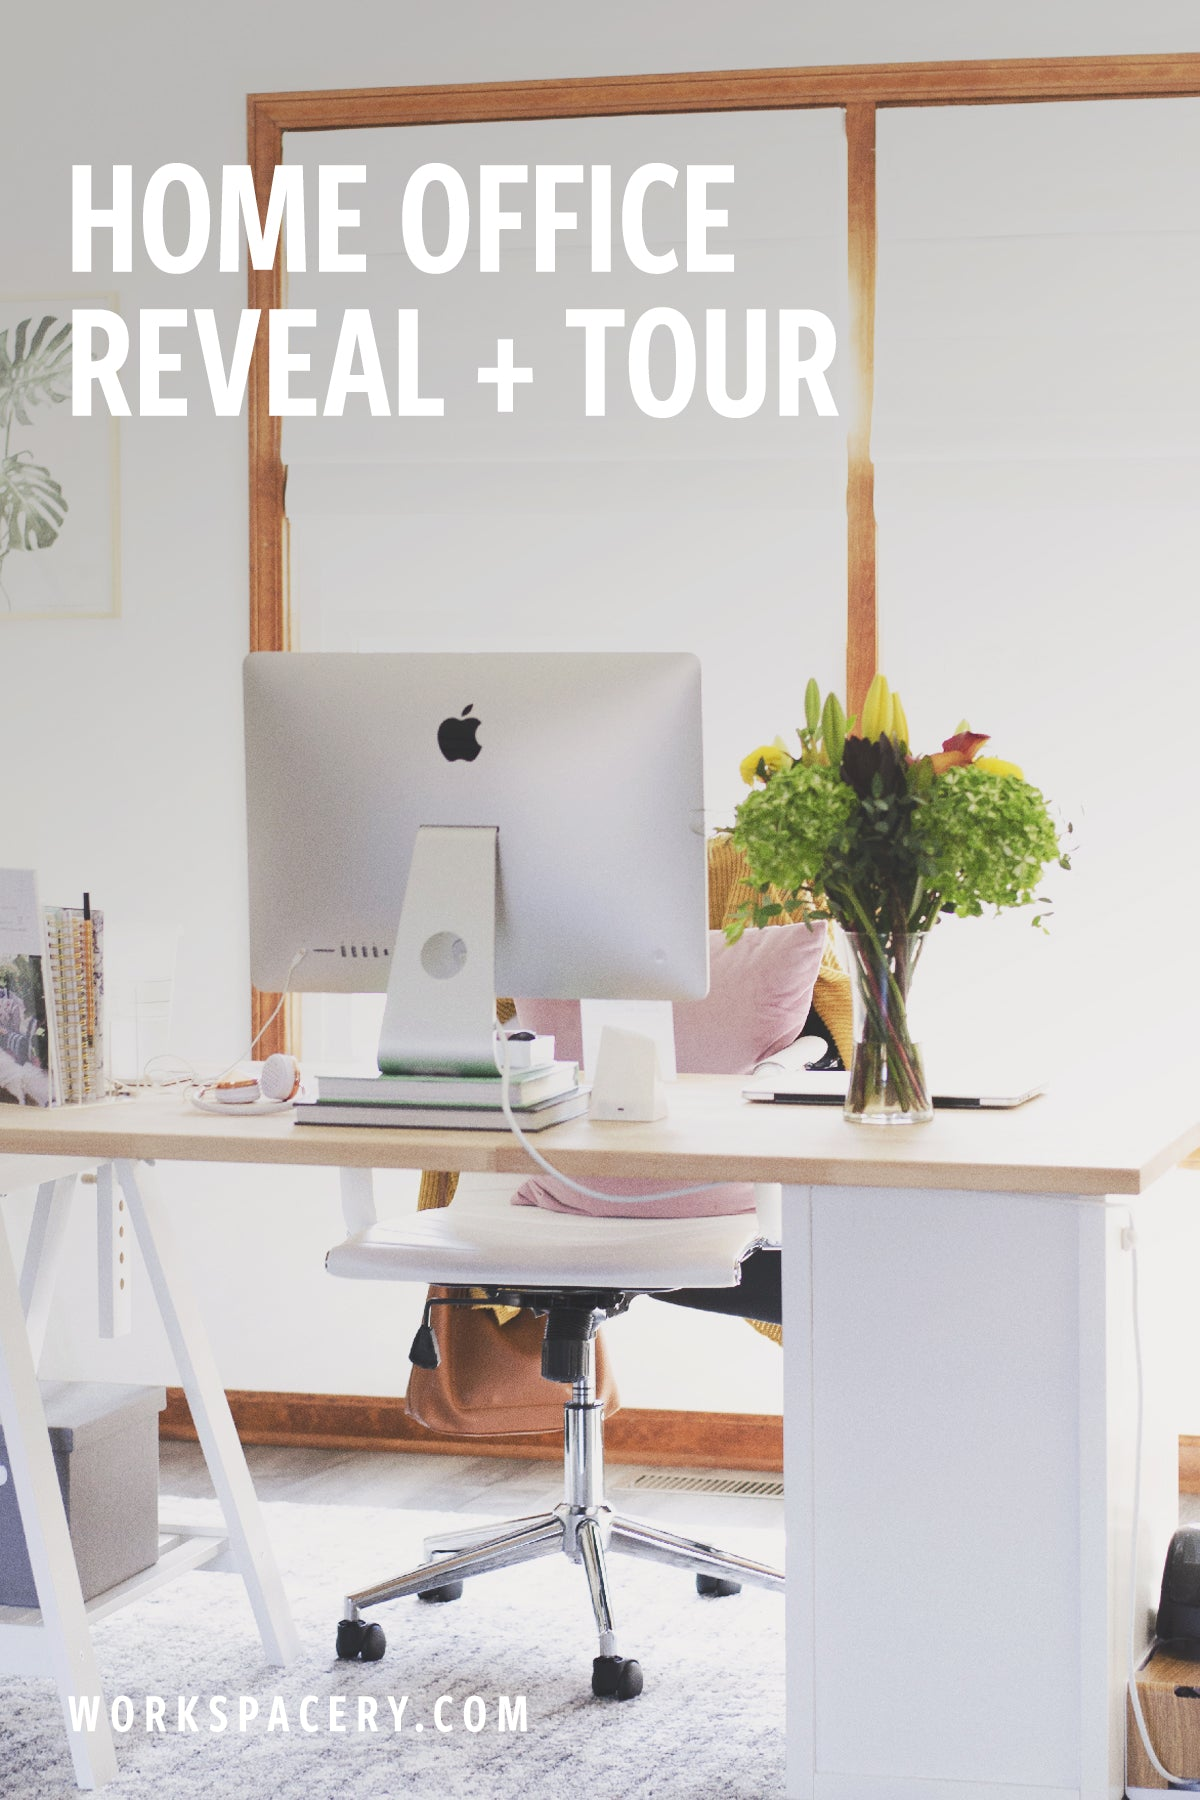 Home Office Reveal + Tour